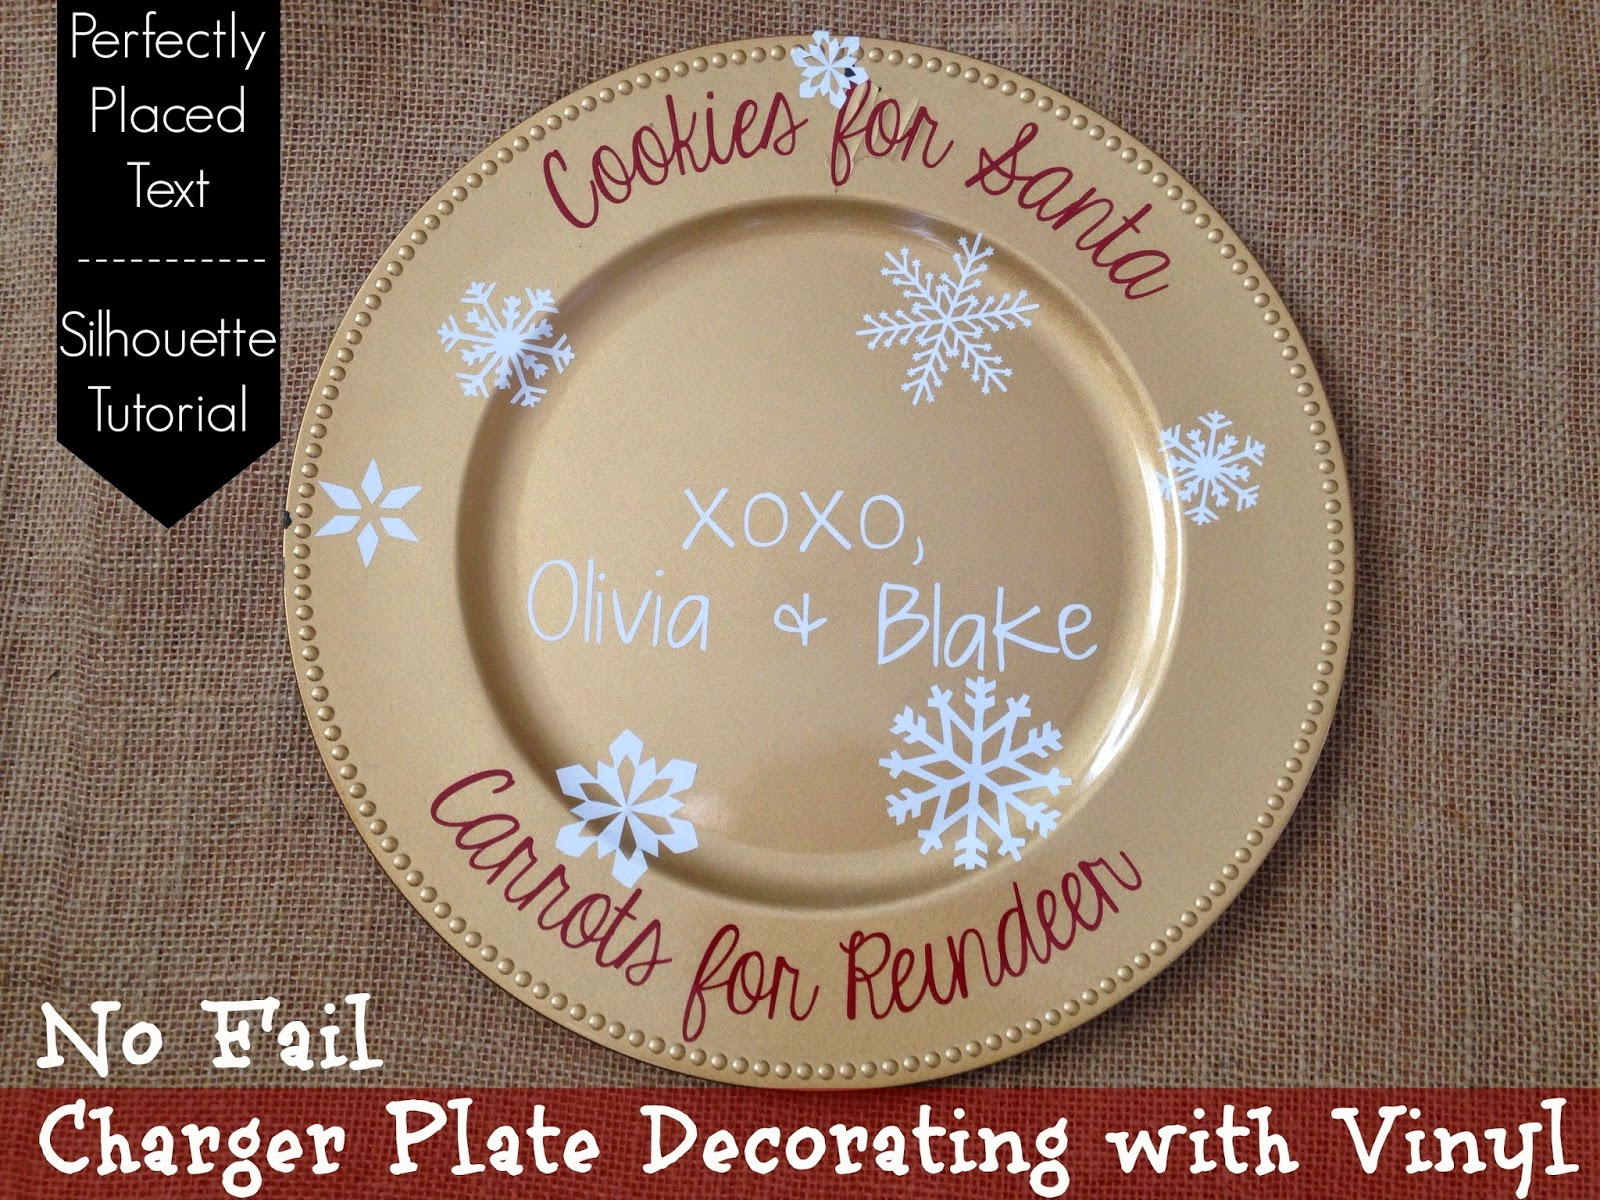 How To Perfectly Decorate Charger Plates With Silhouette & Decorative Plate Chargers | Decoration For Home